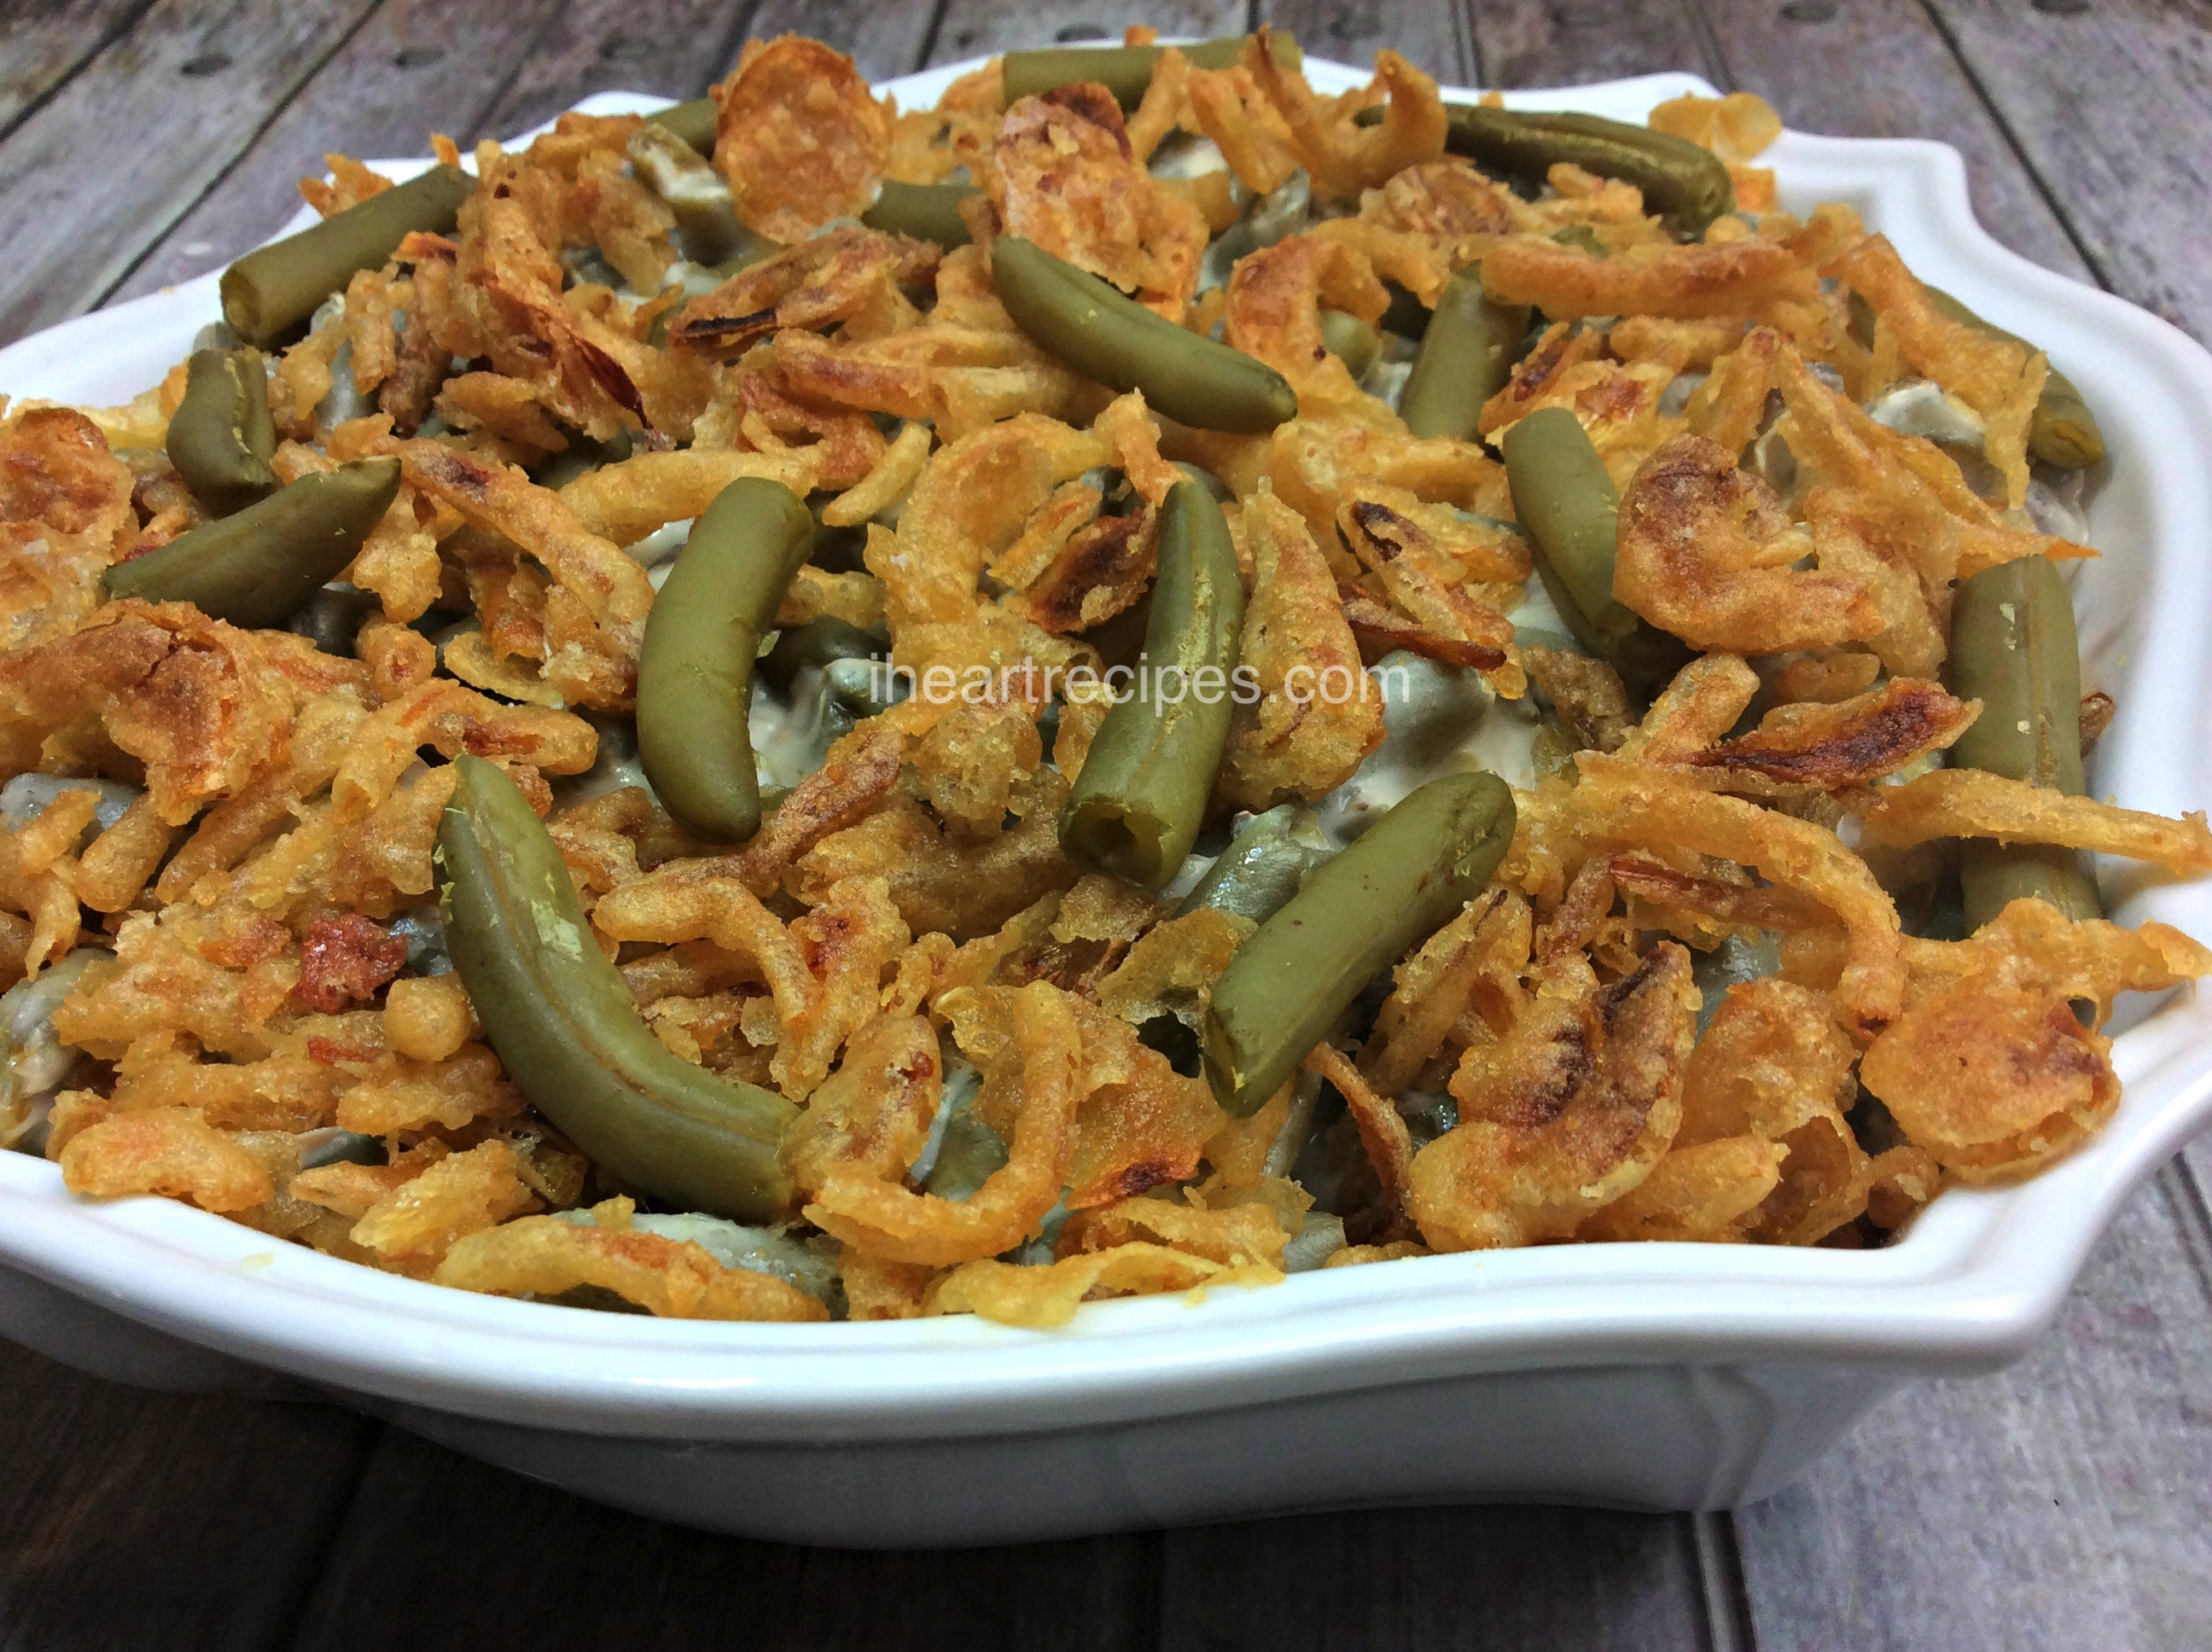 Fresh green beans, cream of mushroom soup, and crispy french fried onions make up this classic green bean casserole